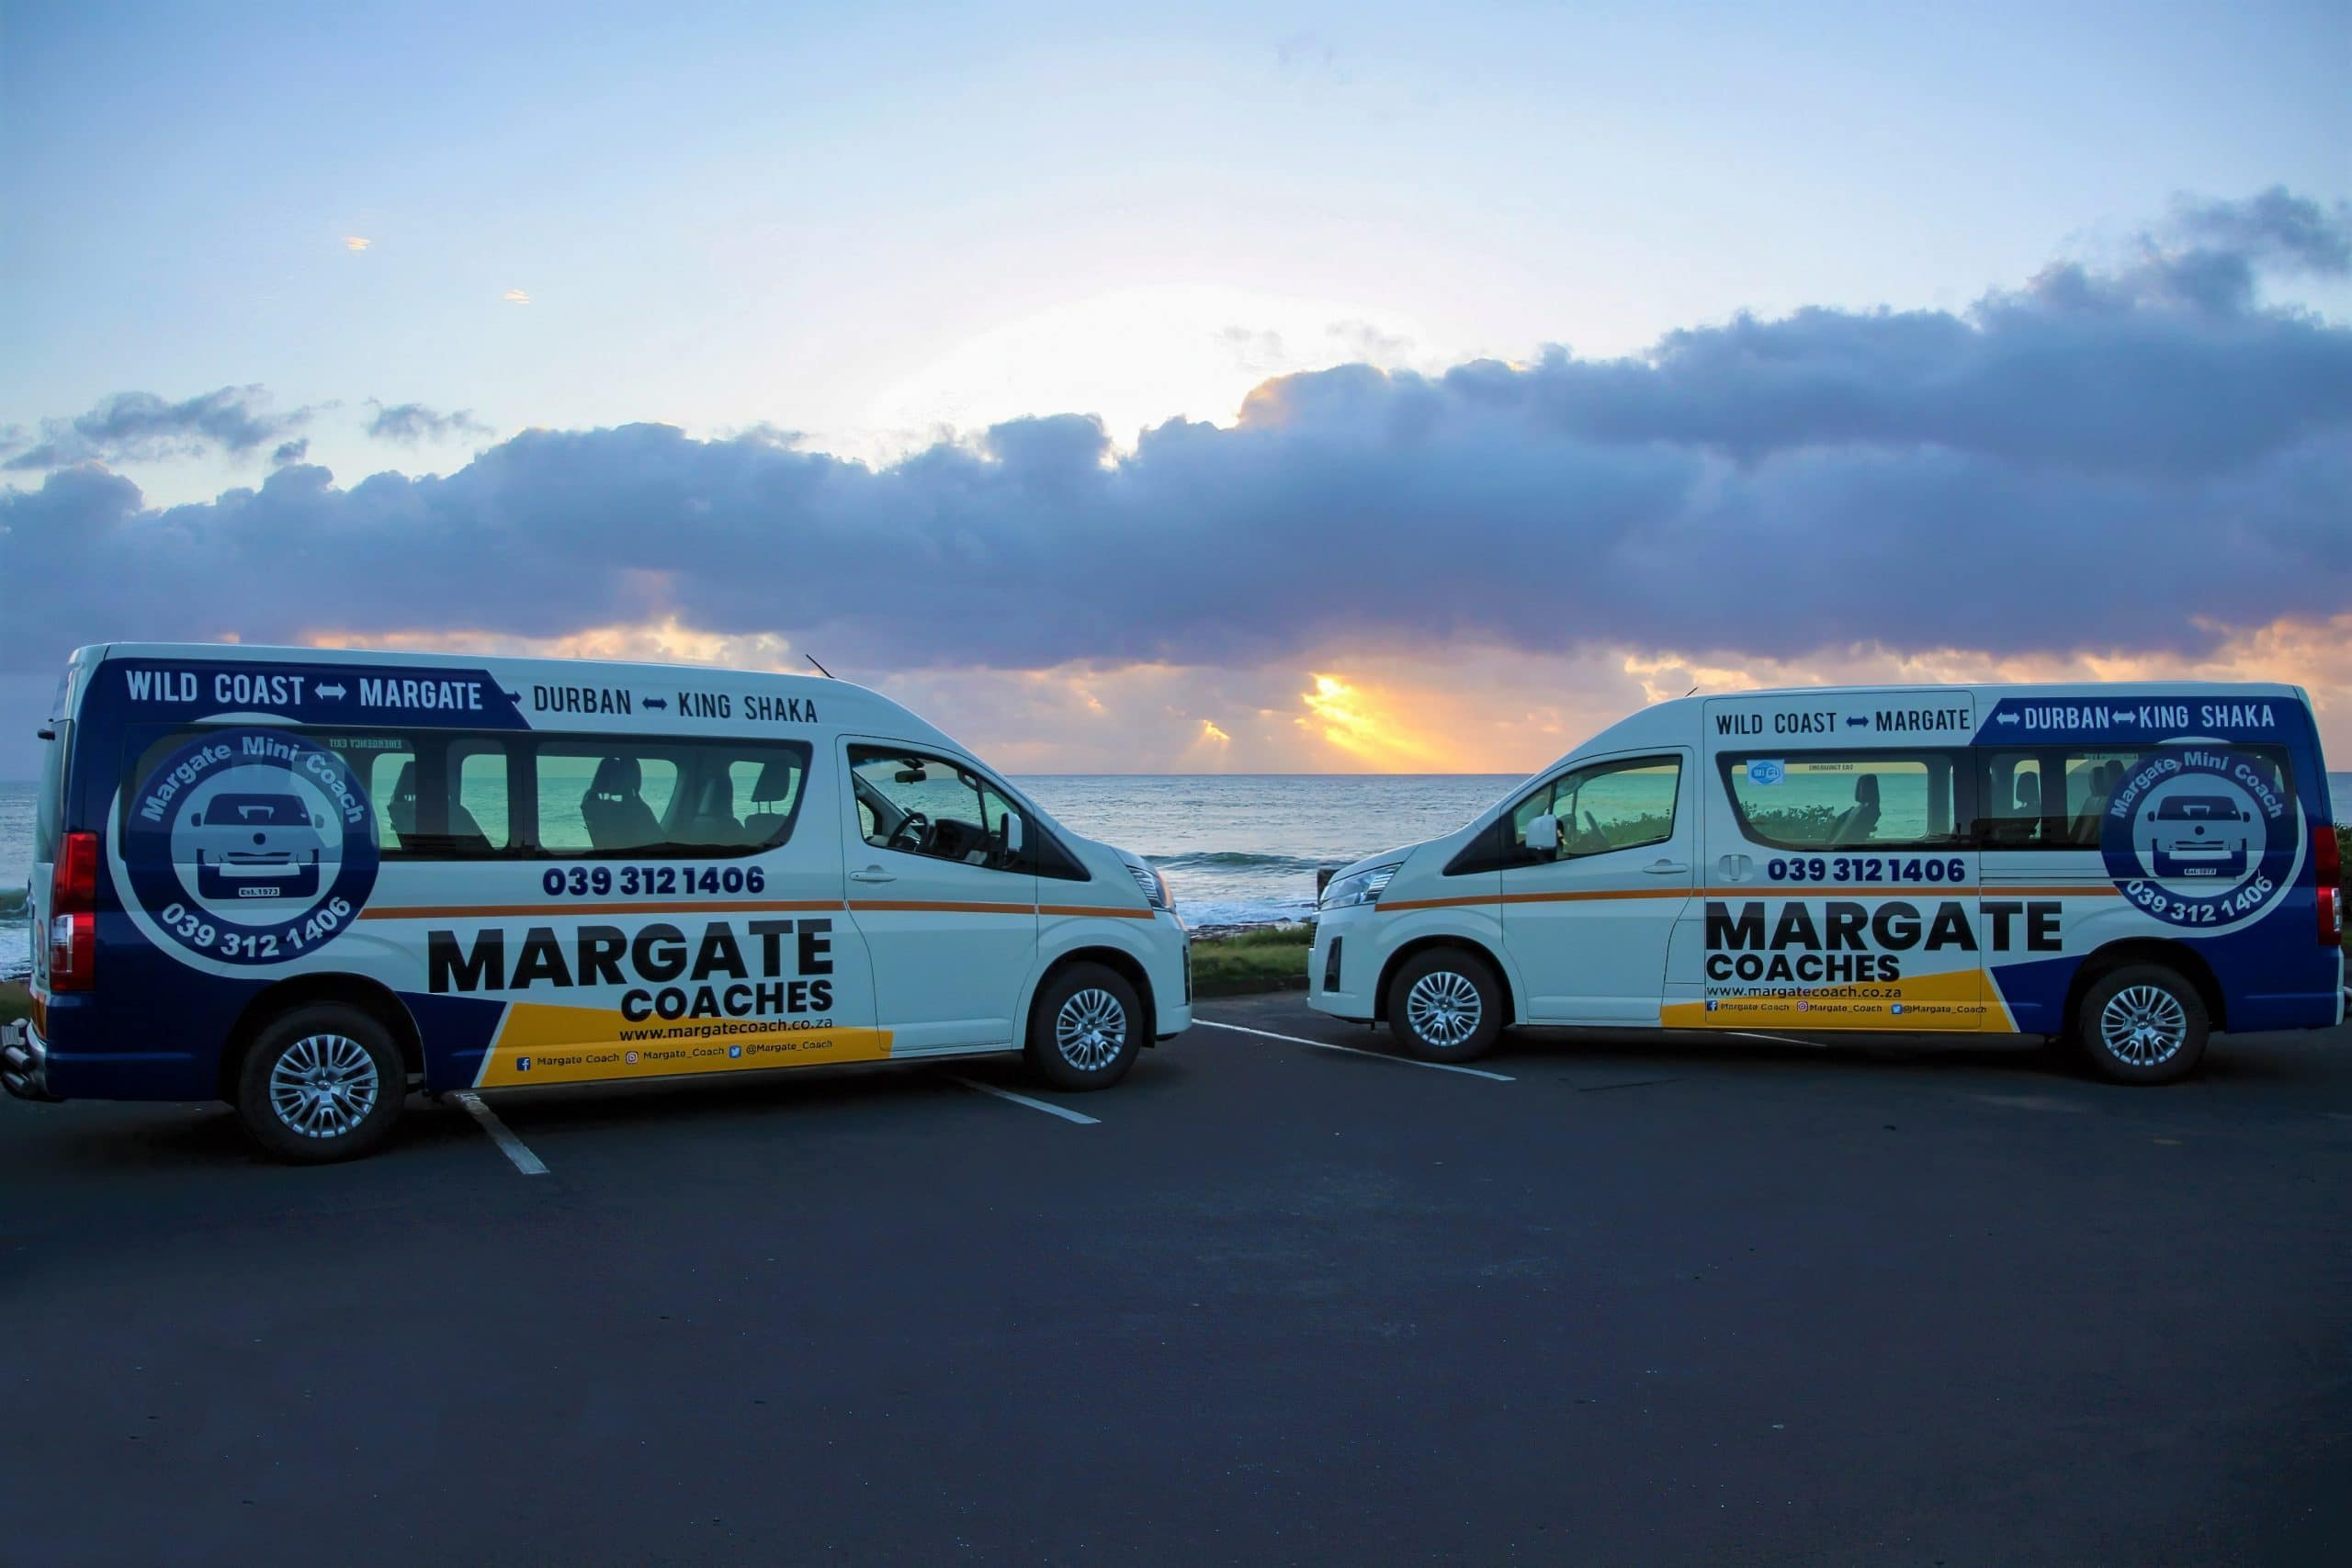 Passenger service from the south coast to durban and return